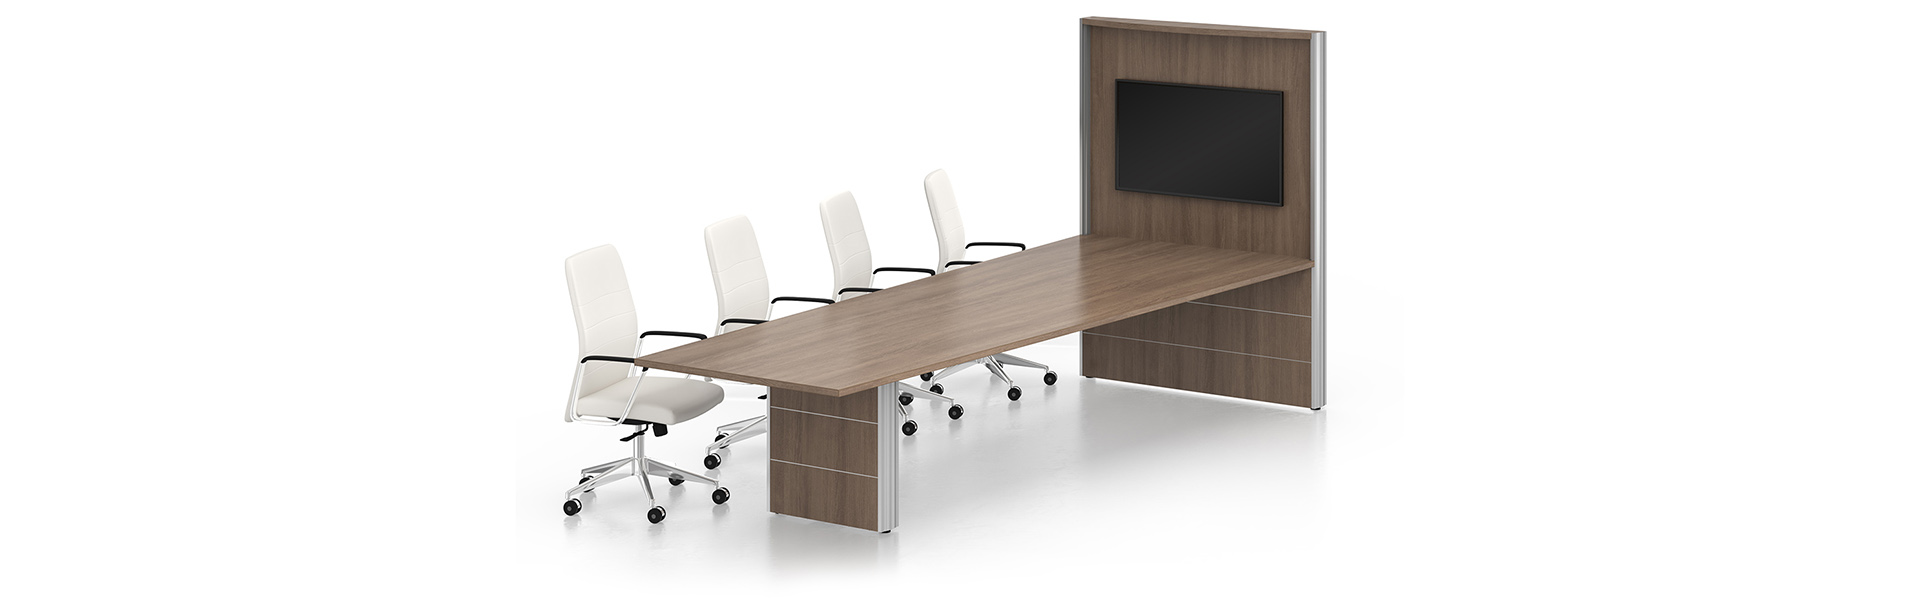 ConcurrenceVideo Sharing Enwork - Rolling conference table